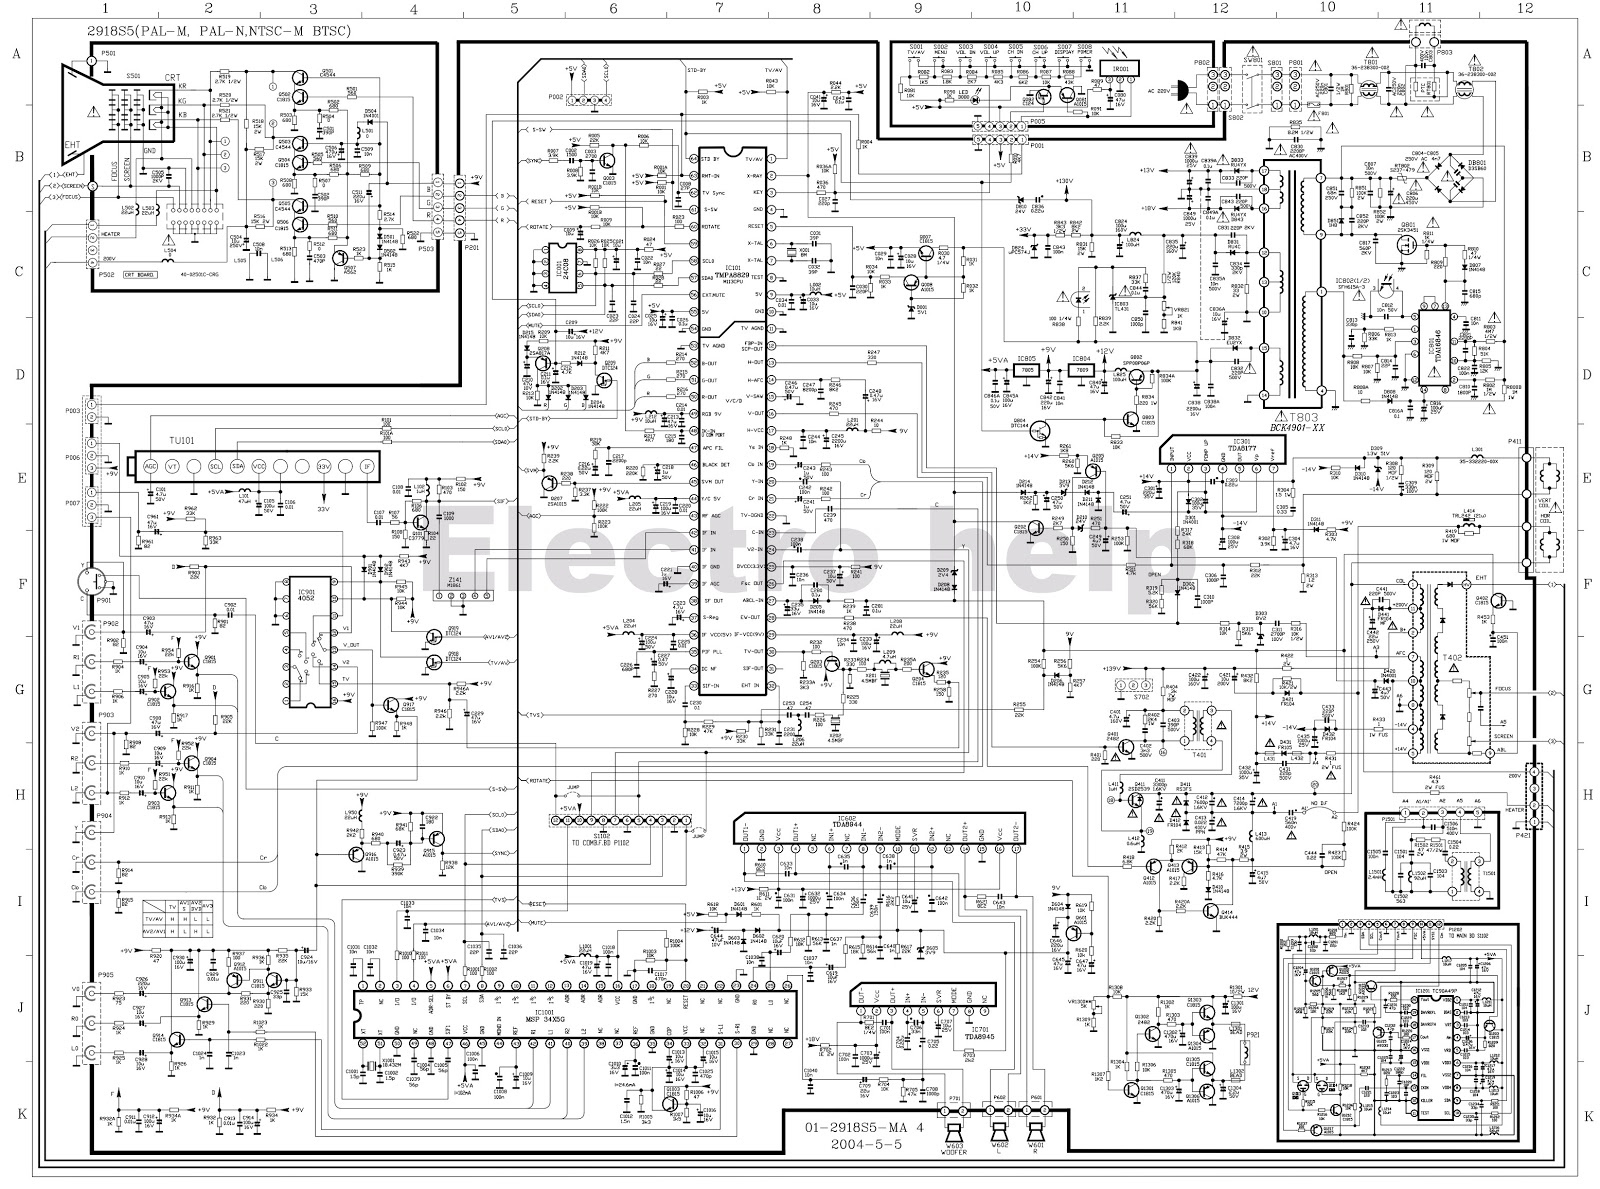 hight resolution of used ics 24c08 tmpa8829 4052 msp34x5g tda8944 tda8945 tc90a49p manguonblog colour tv kit circuit diagram